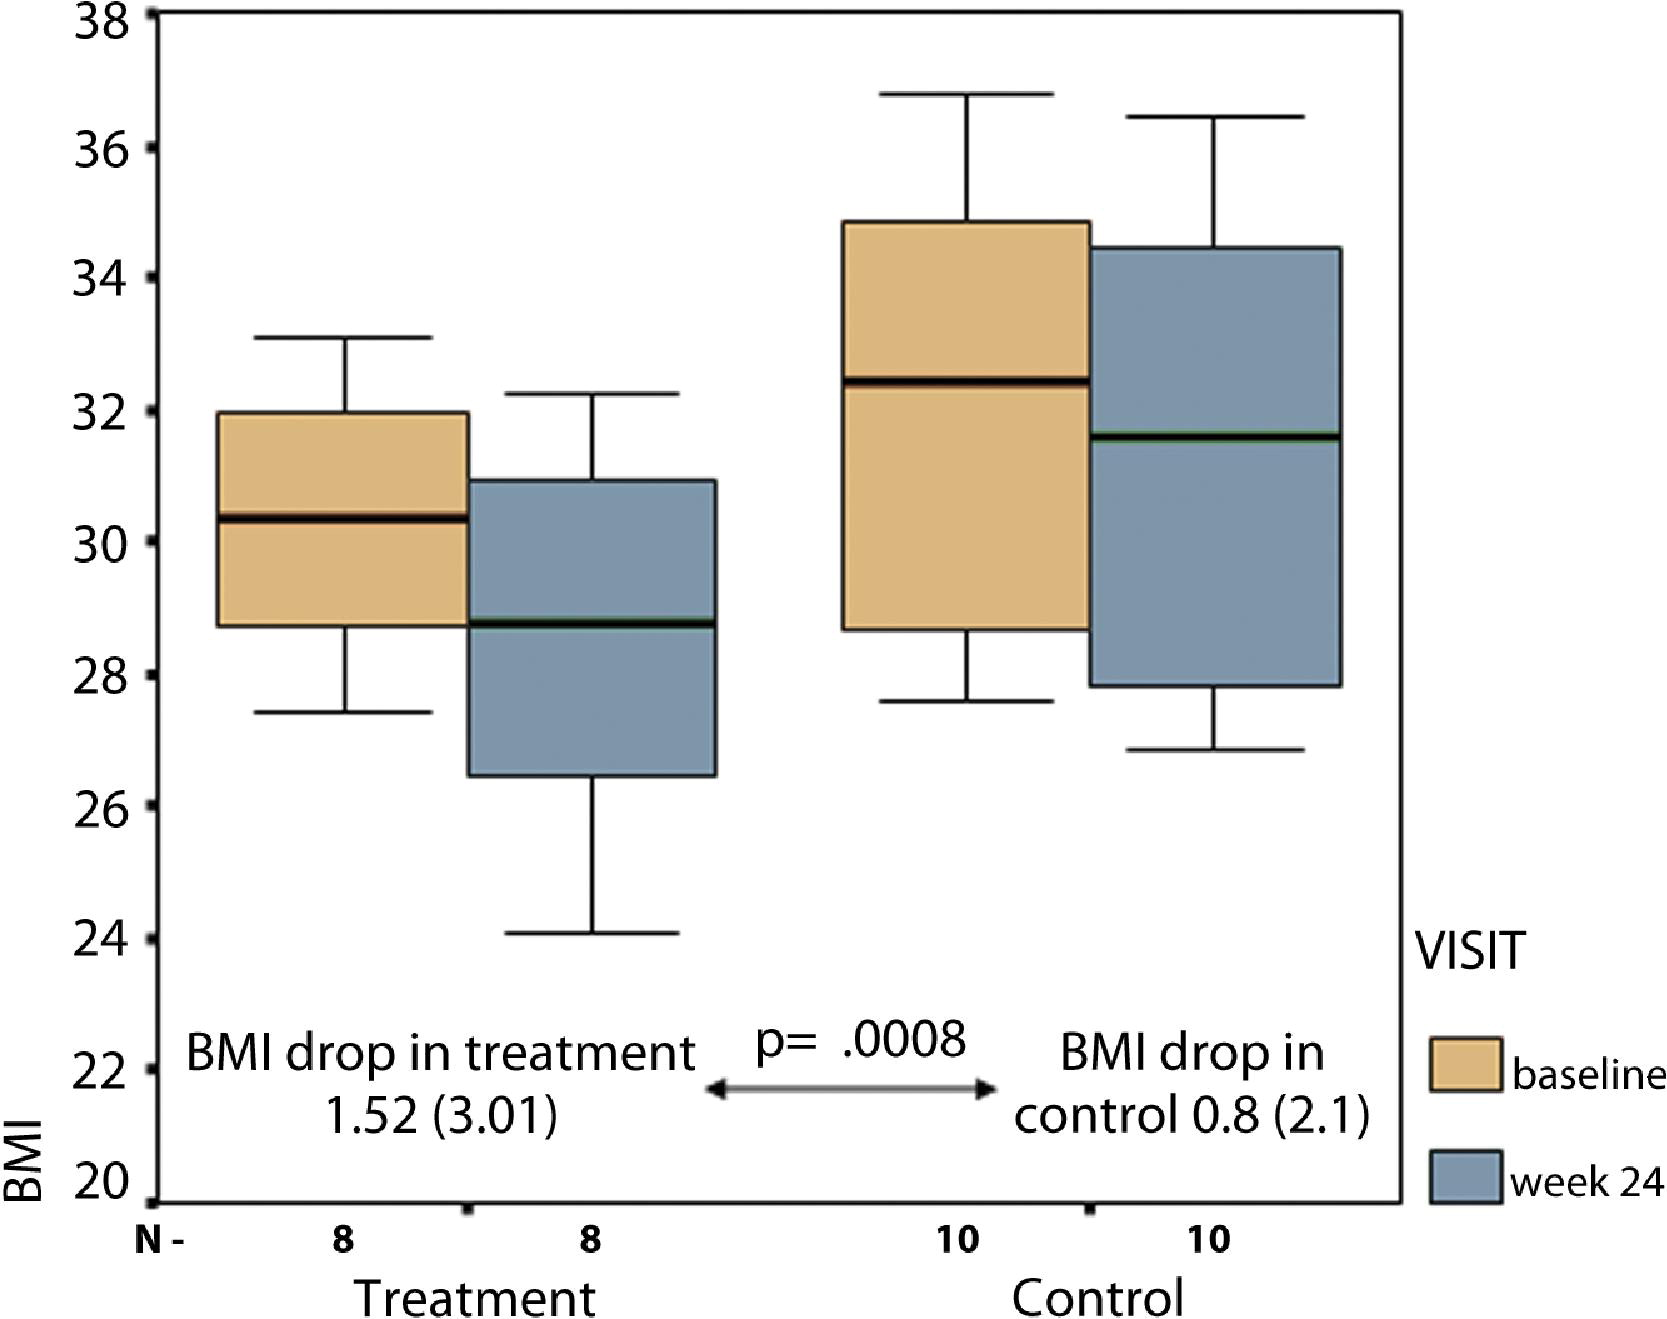 Intragastric Balloon Significantly Improves Nonalcoholic